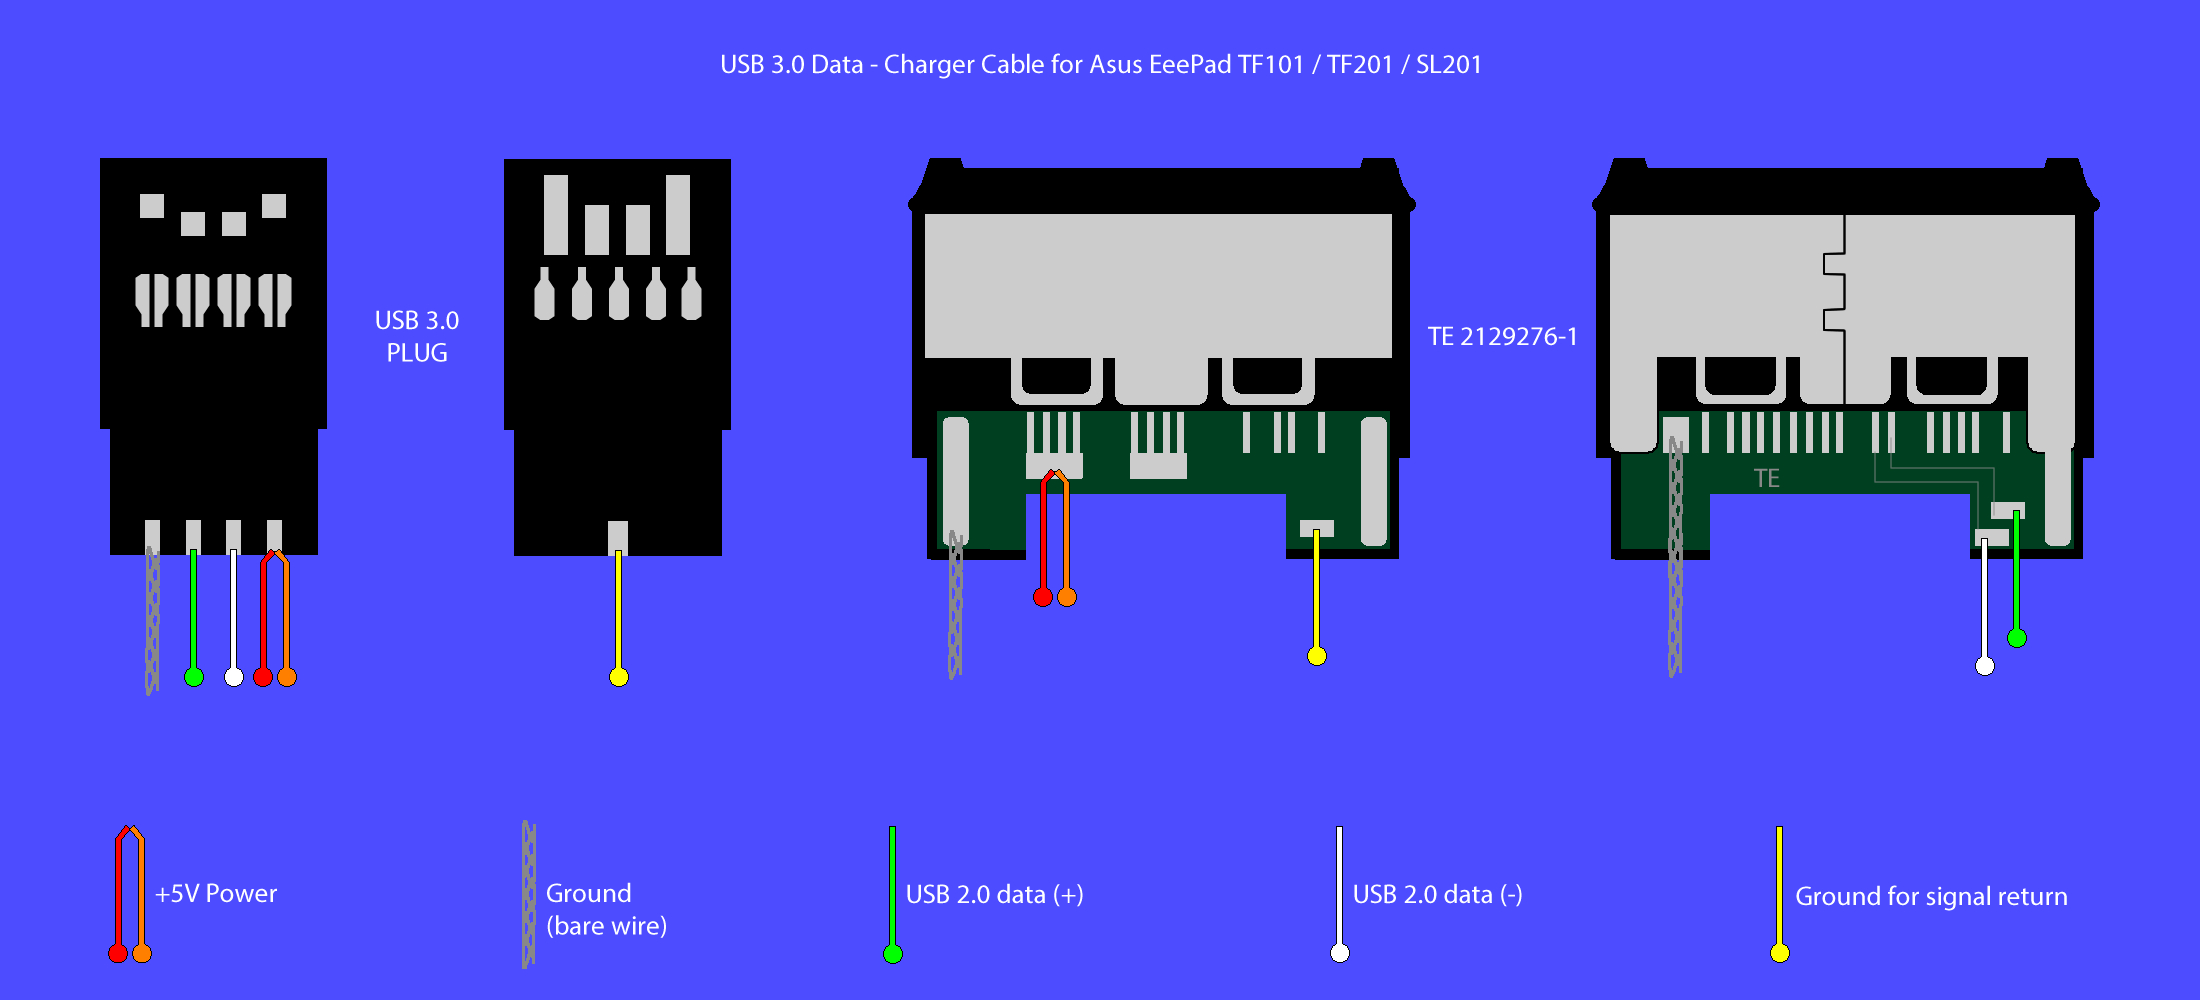 Iphone 4 Cable Wiring Diagram | Manual E-Books - Mini Usb Charging Cable Wiring Diagram